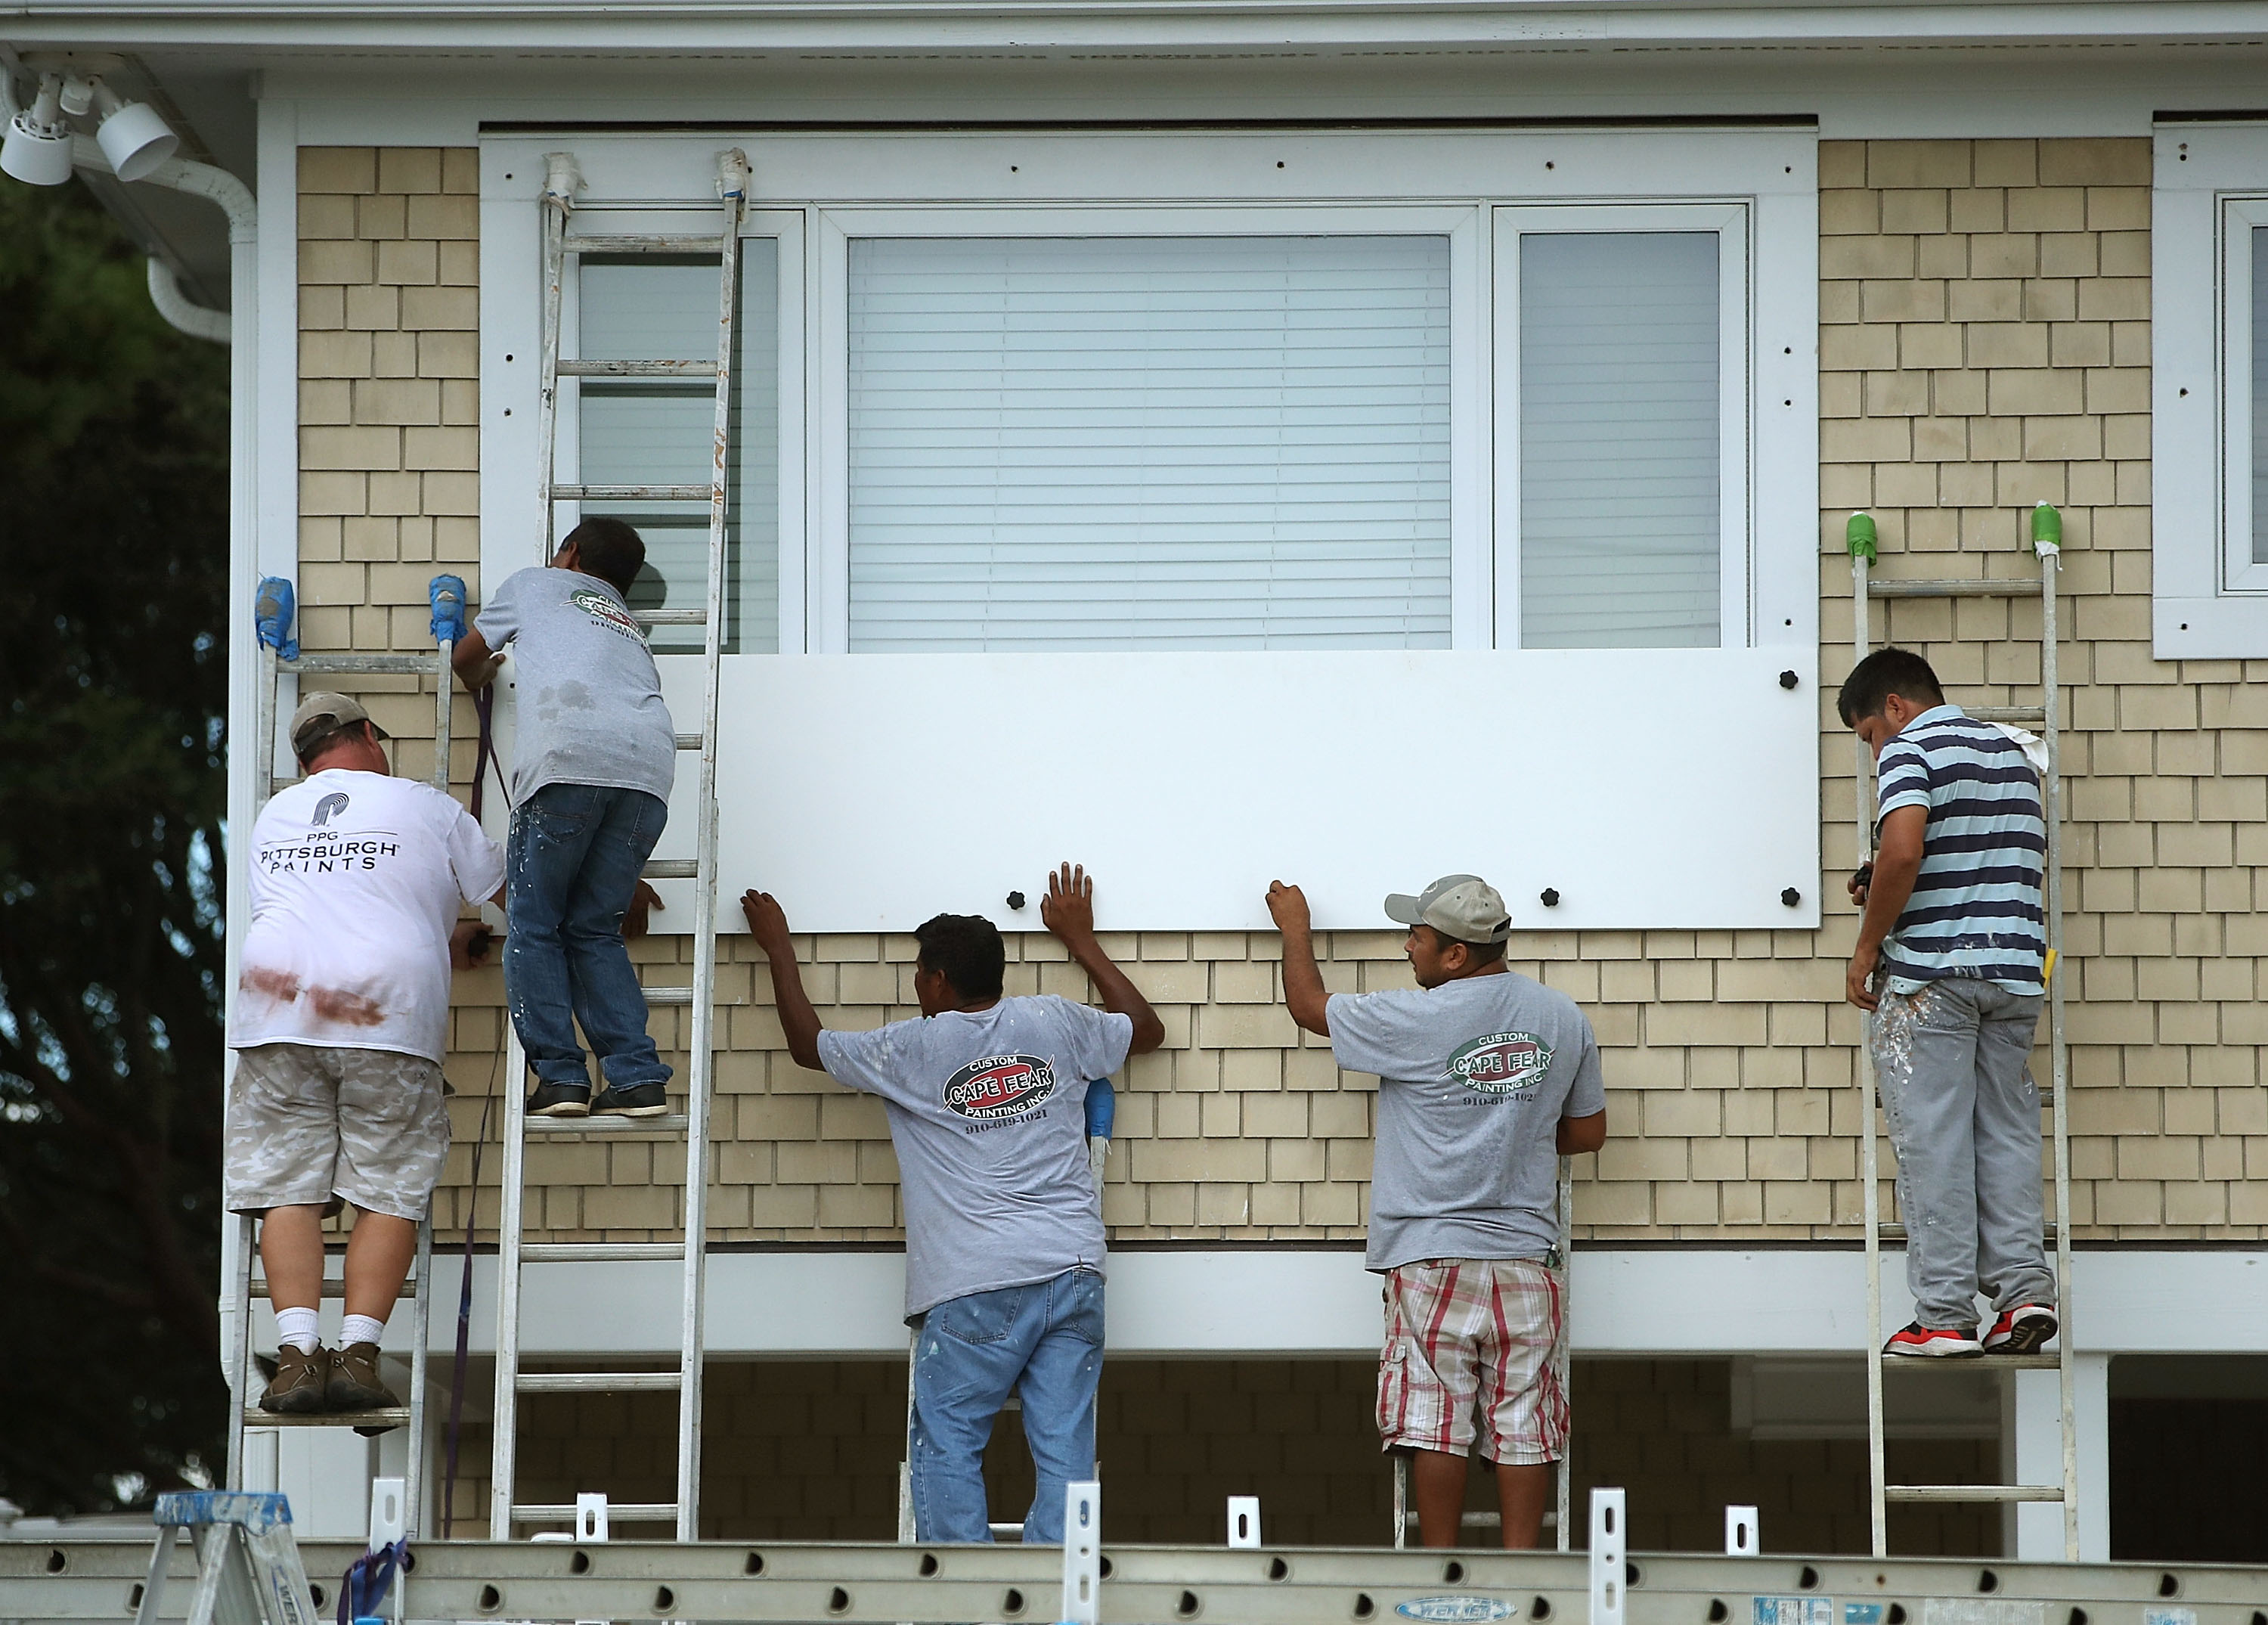 Workers board up a home while preparing for the arrival of Hurricane Florence on September 11, 2018 in Wrightsville Beach, United States. Hurricane Florence is expected on Friday possibly as a category 4 storm along the Virginia, North Carolina and South Carolina coastline.